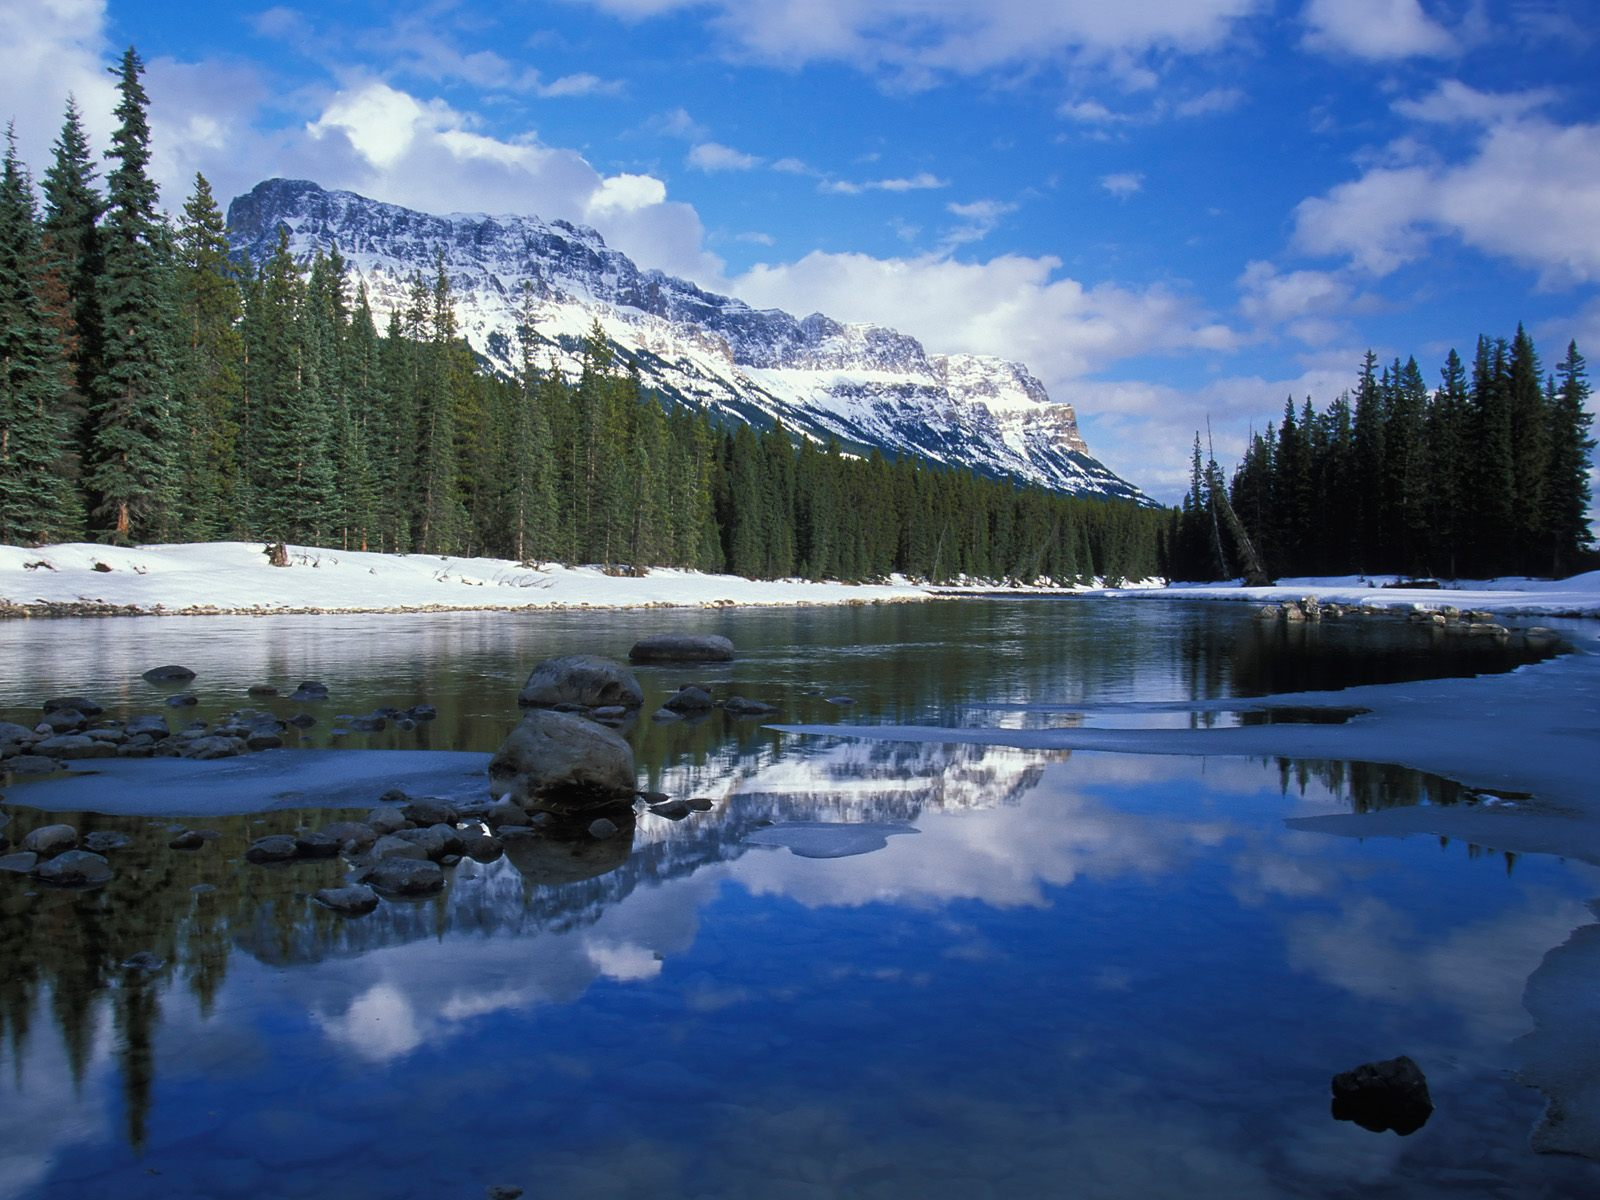 And Castle Mountain Alberta Canada Wallpaper   HQ Wallpapers 1600x1200